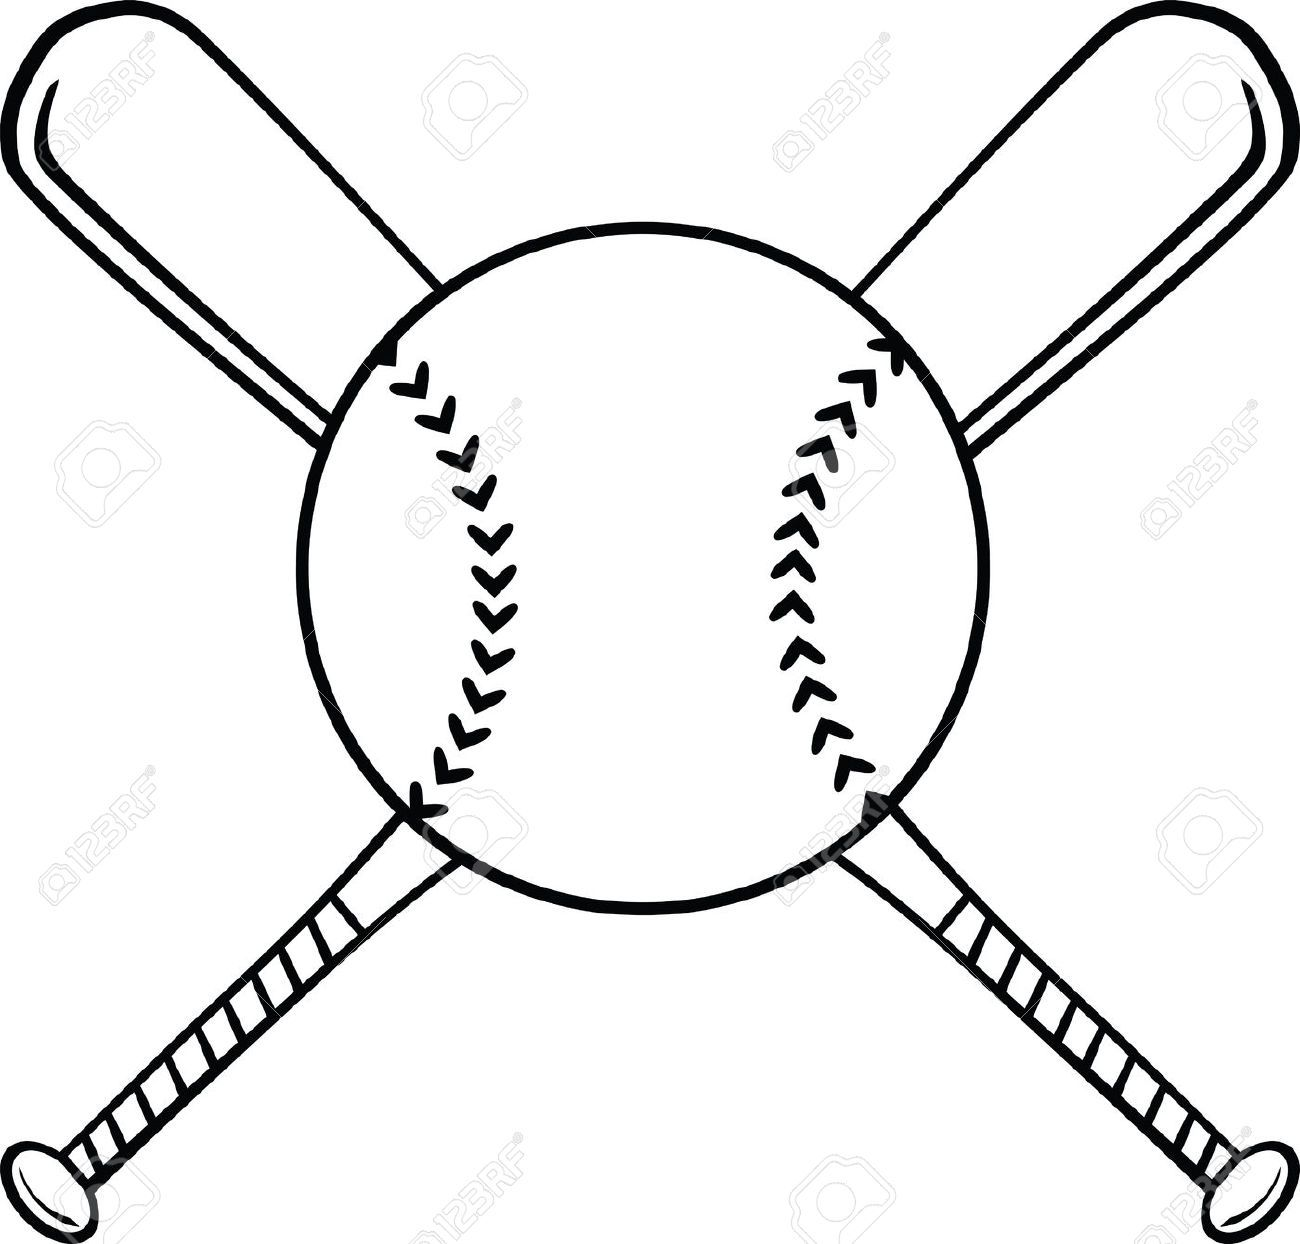 softball ball and bat clipart clipartfox silhouette pinterest rh pinterest com baseball glove and bat clip art baseball and bat clipart free